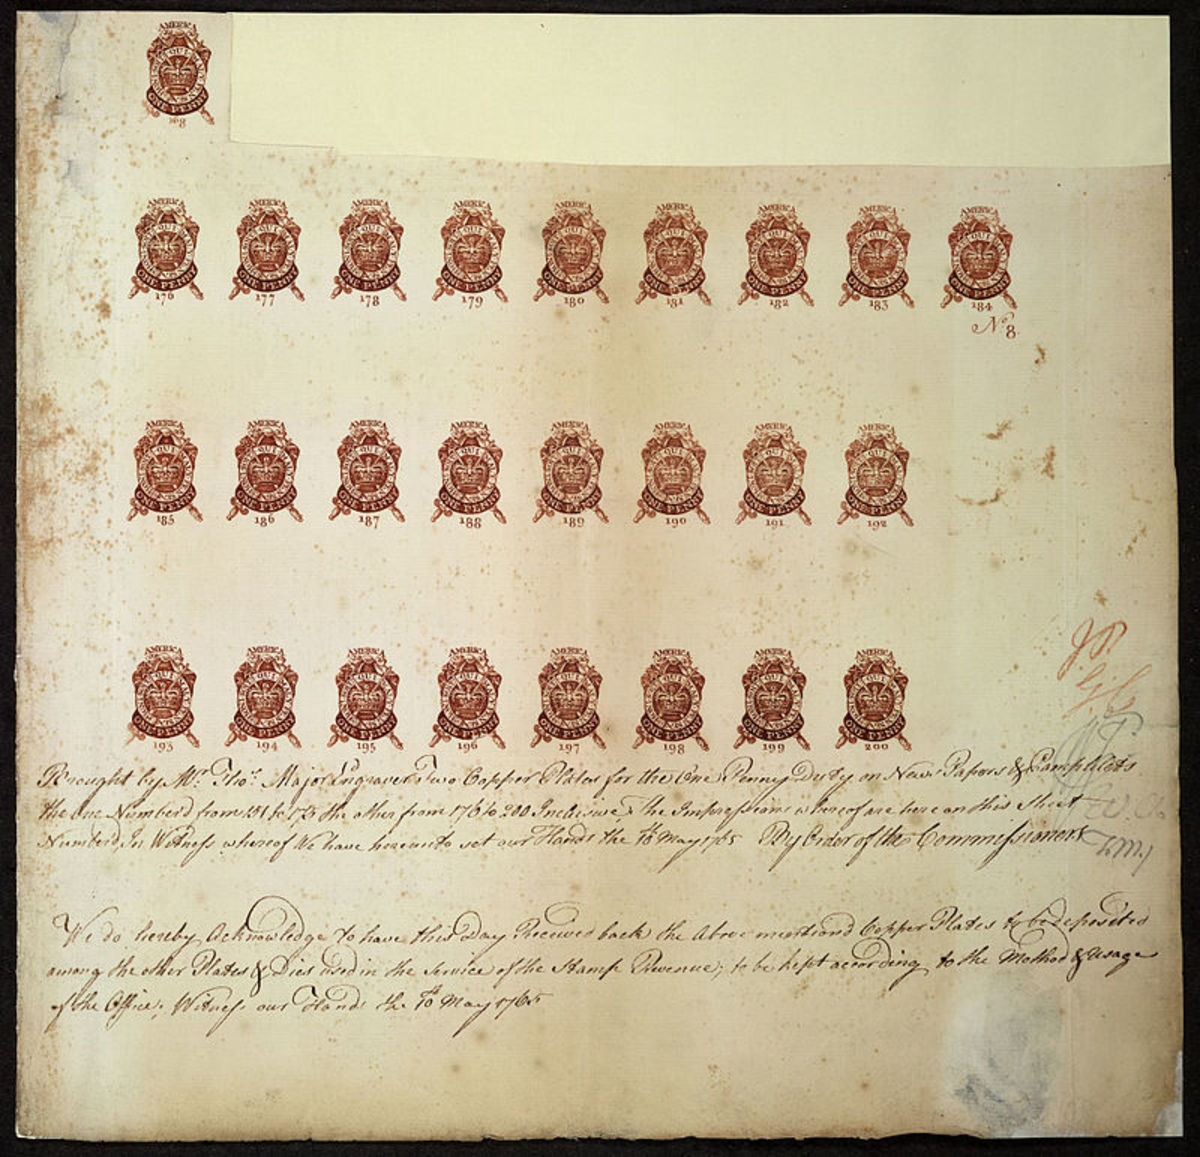 Engravers proof sheet for 1765 tax stamps.